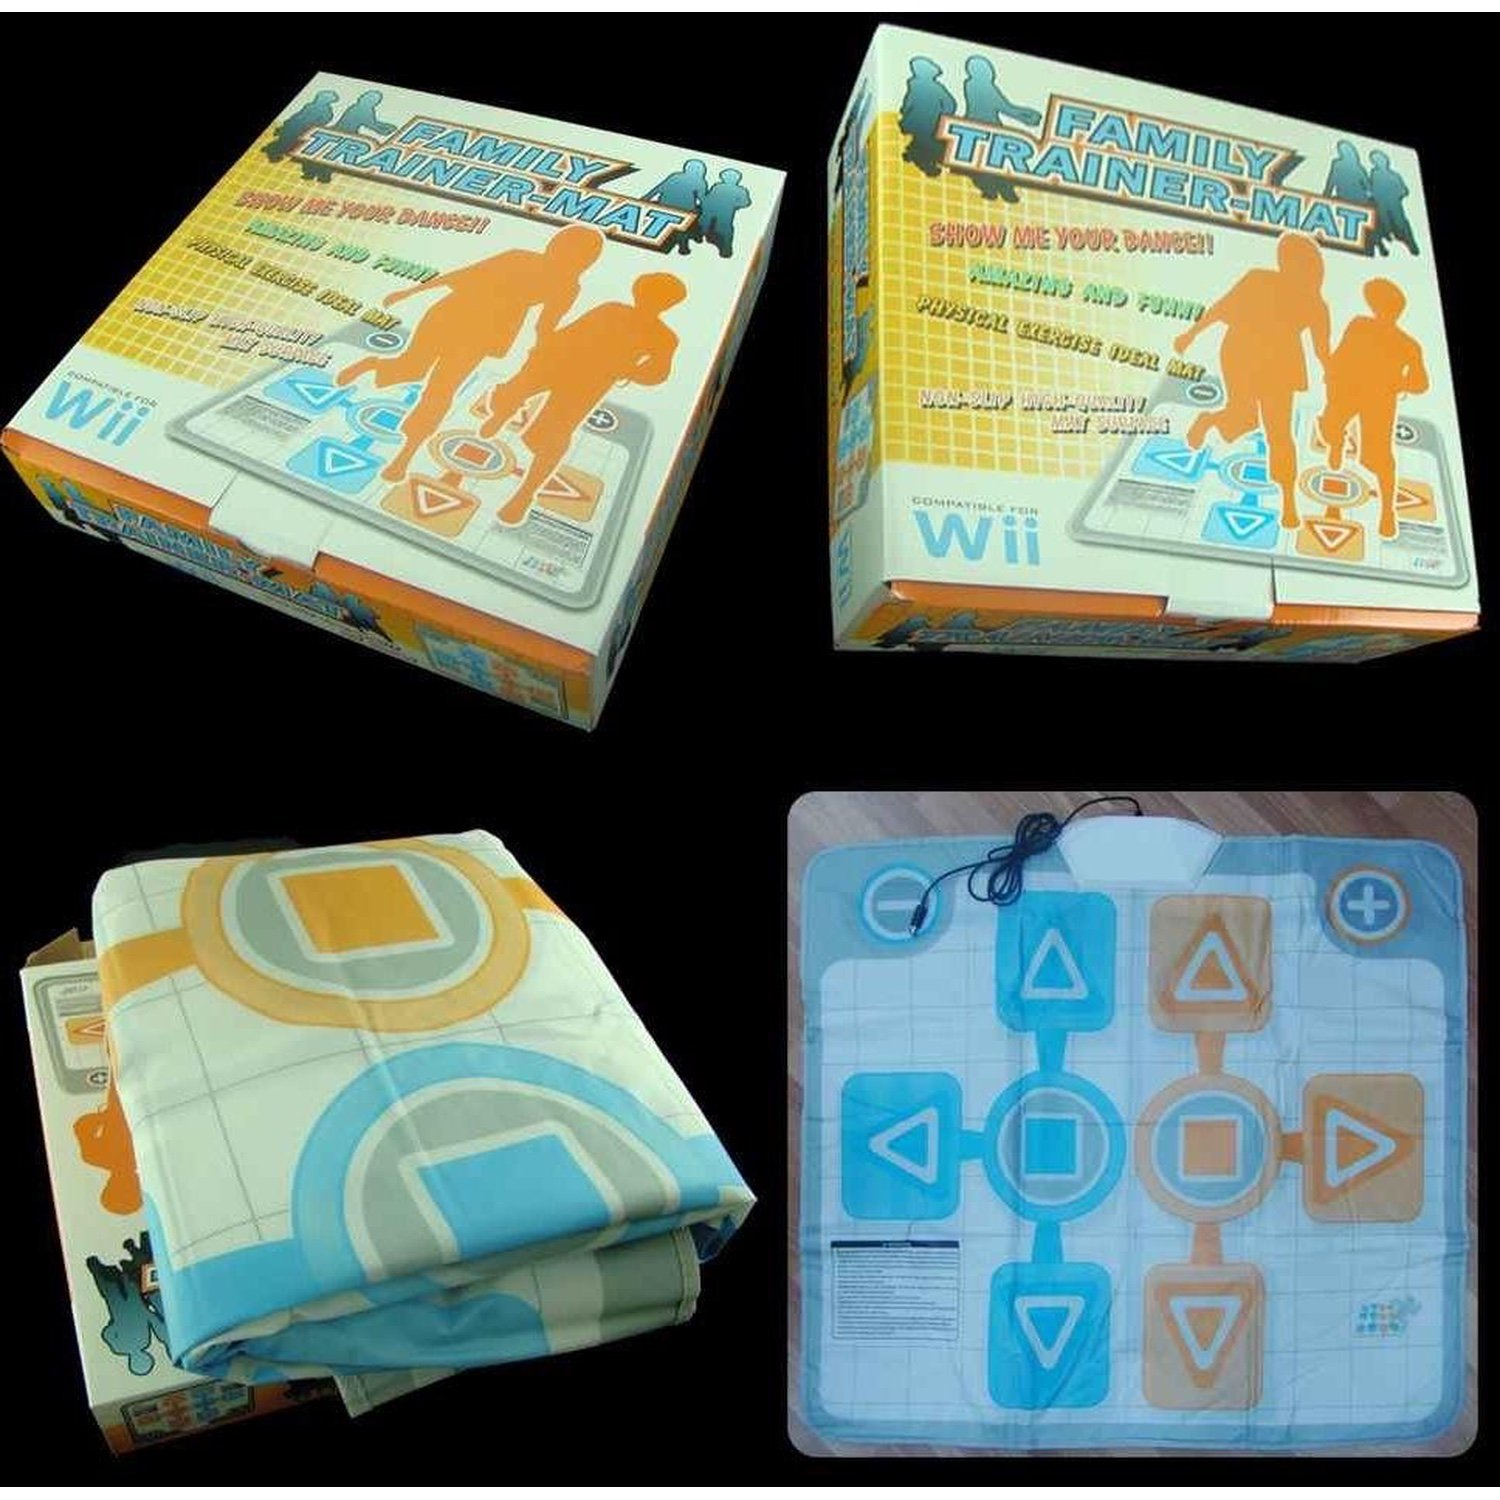 Track Family Trainer For Nintendo Wii